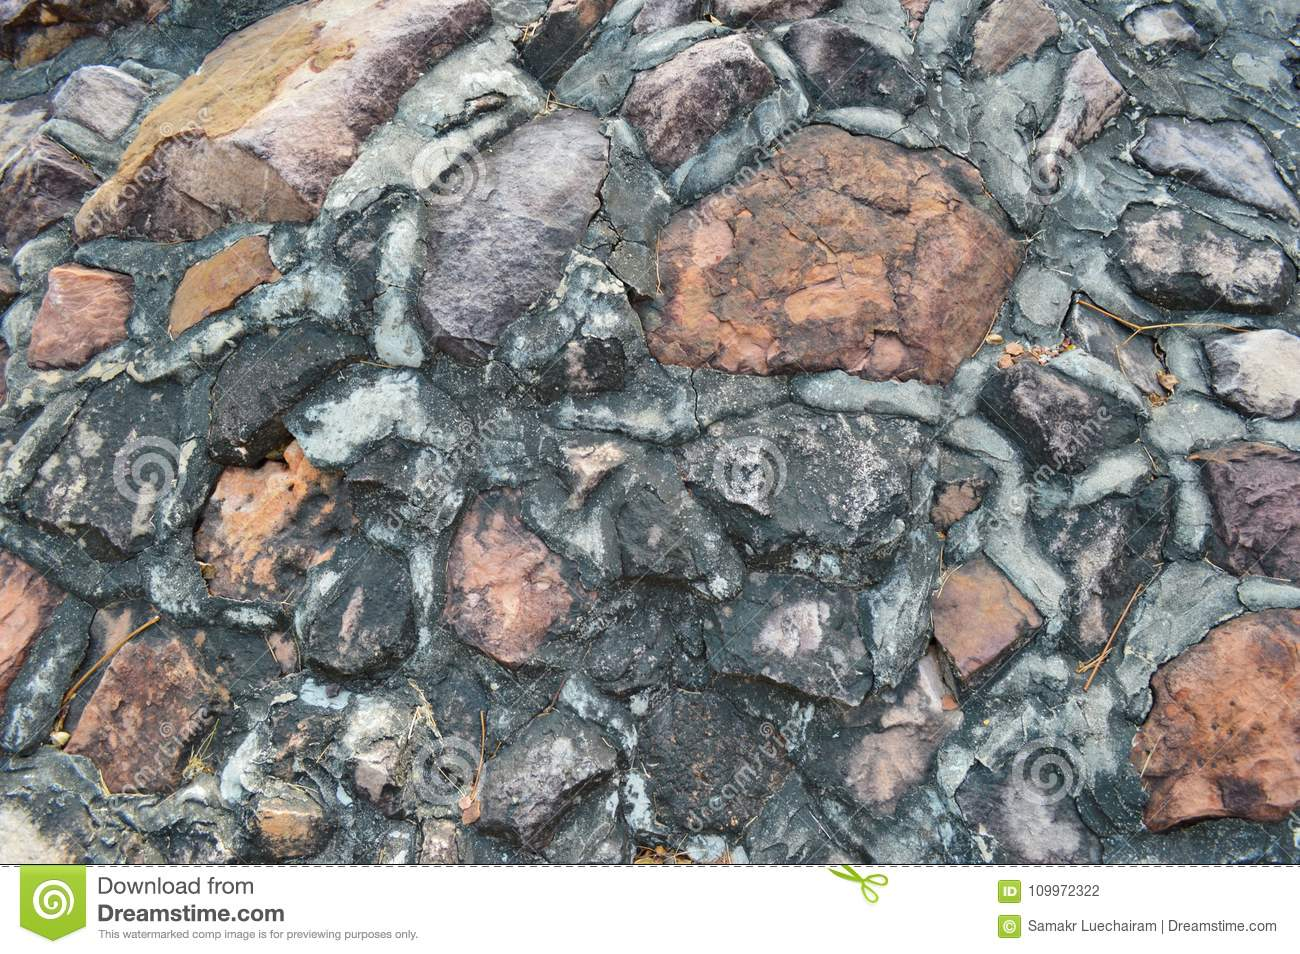 Clinkers Cement Can Be Dissolved : Cement clinker wall stock photo. image of species stone 109972322